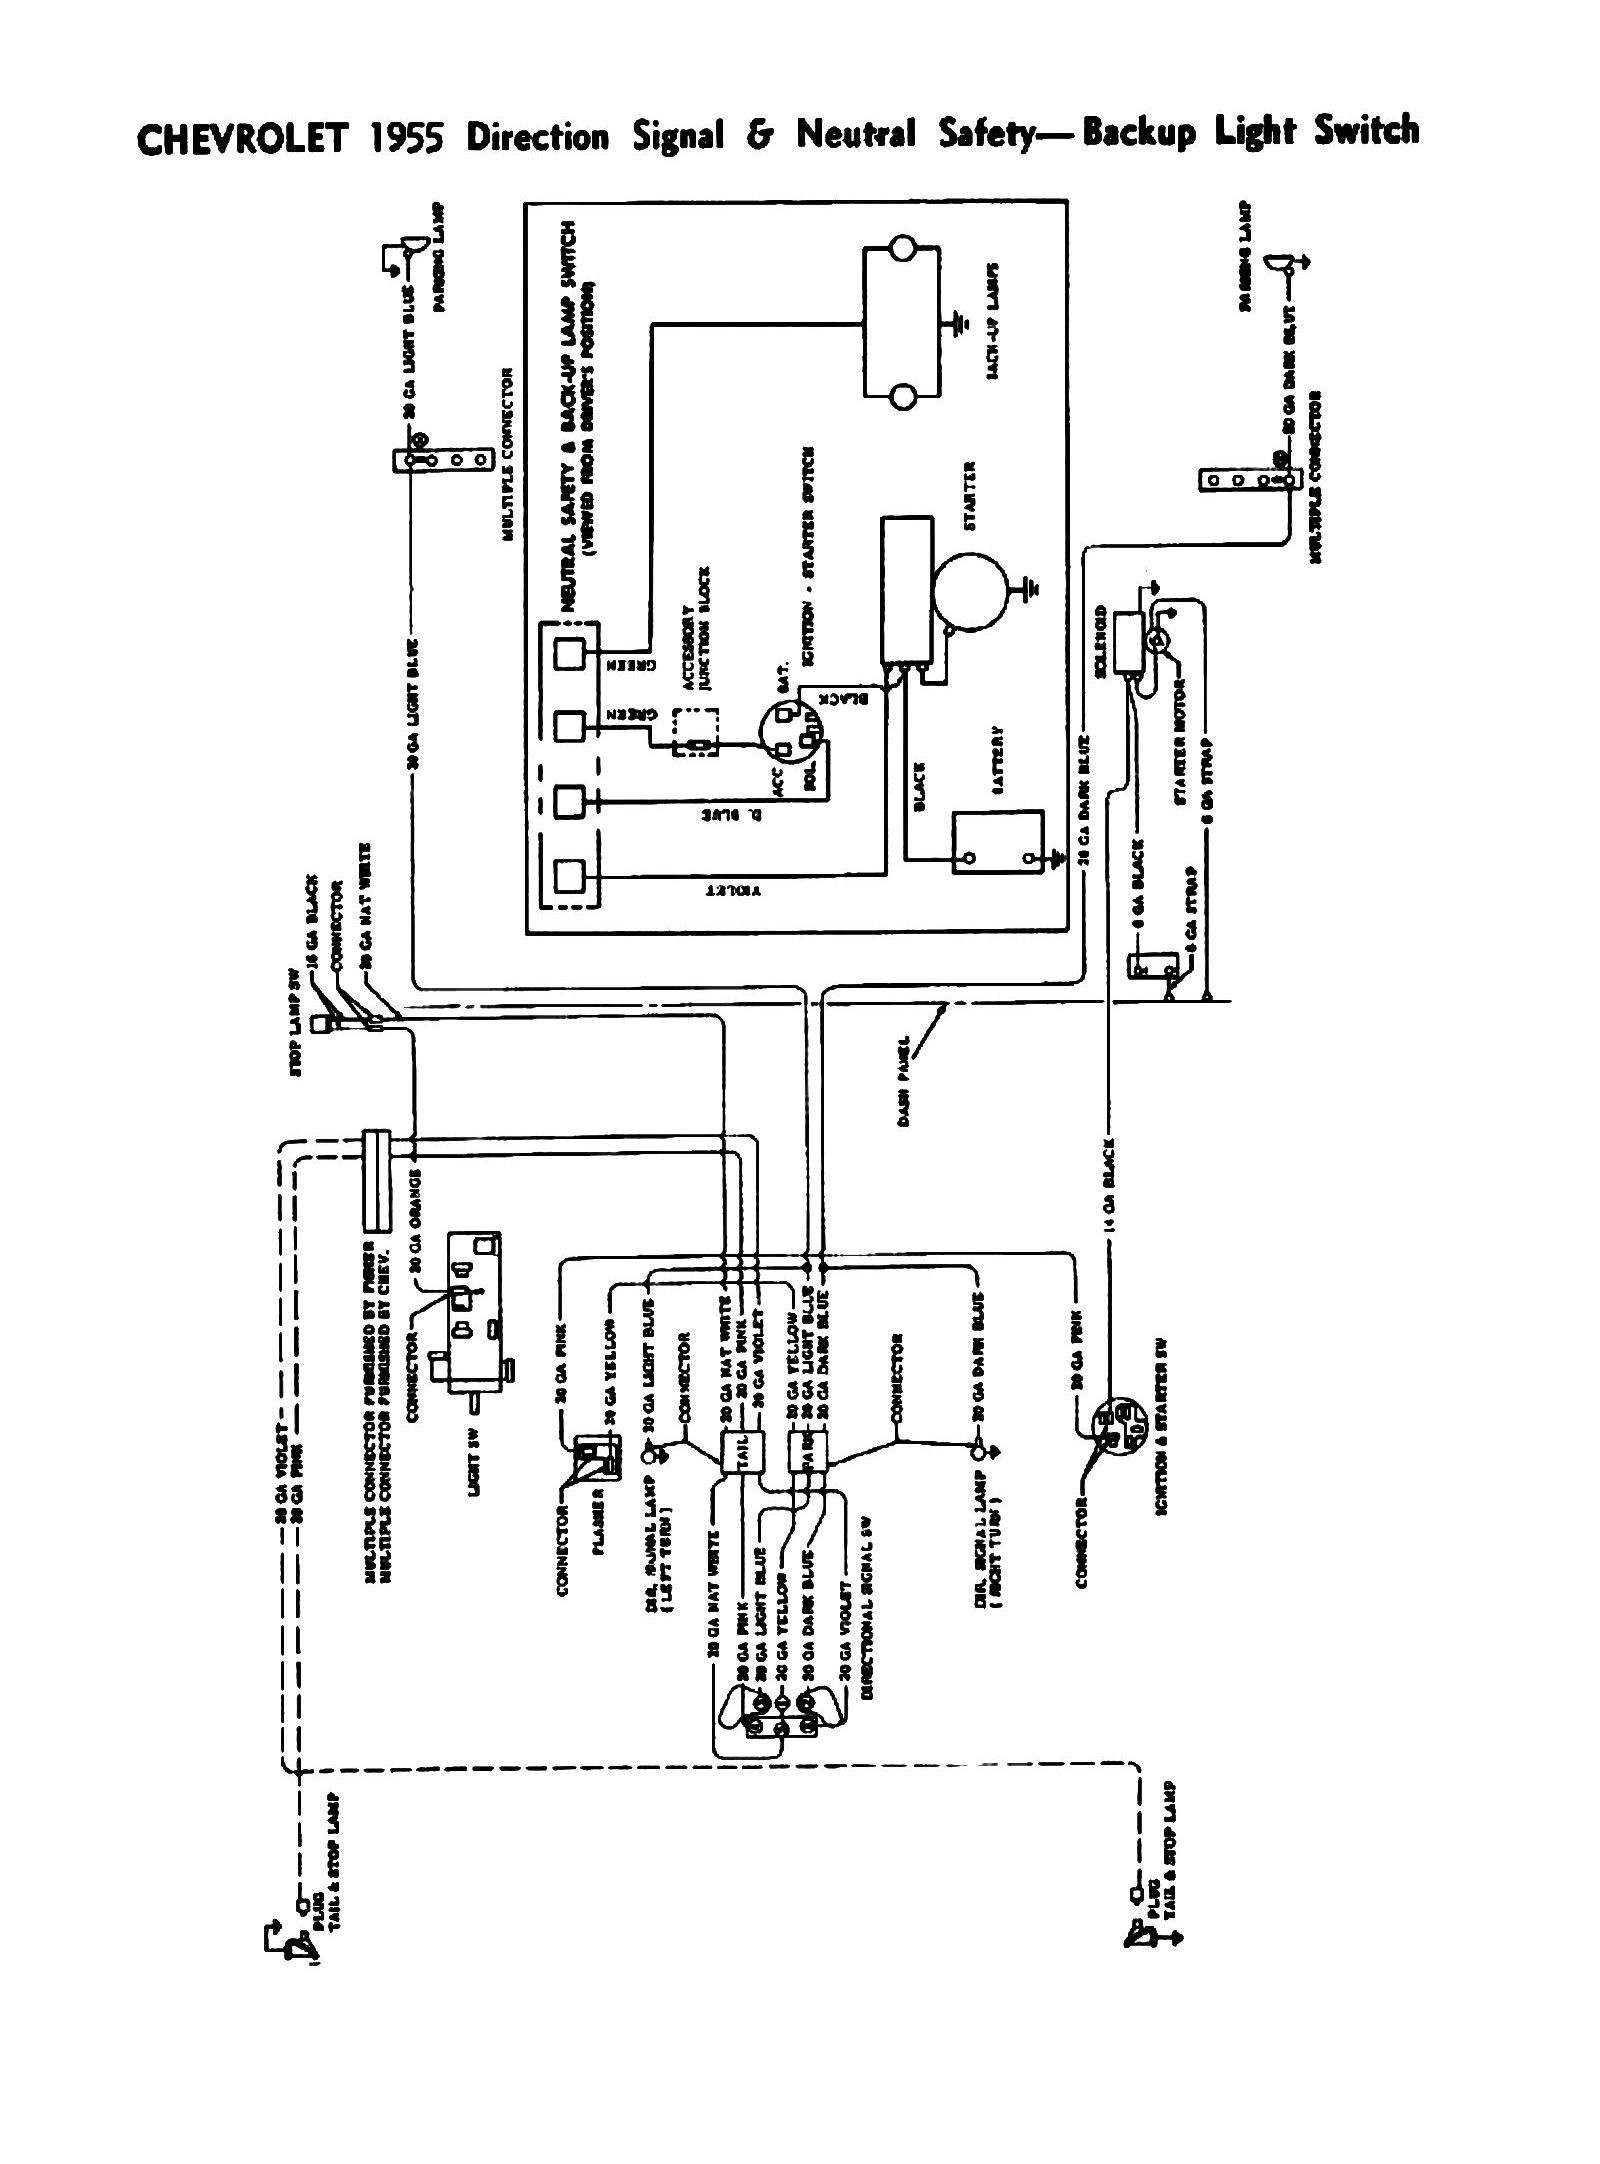 yardman solenoid wiring diagram    mtd    ignition switch    wiring       diagram    free    wiring       diagram        mtd    ignition switch    wiring       diagram    free    wiring       diagram